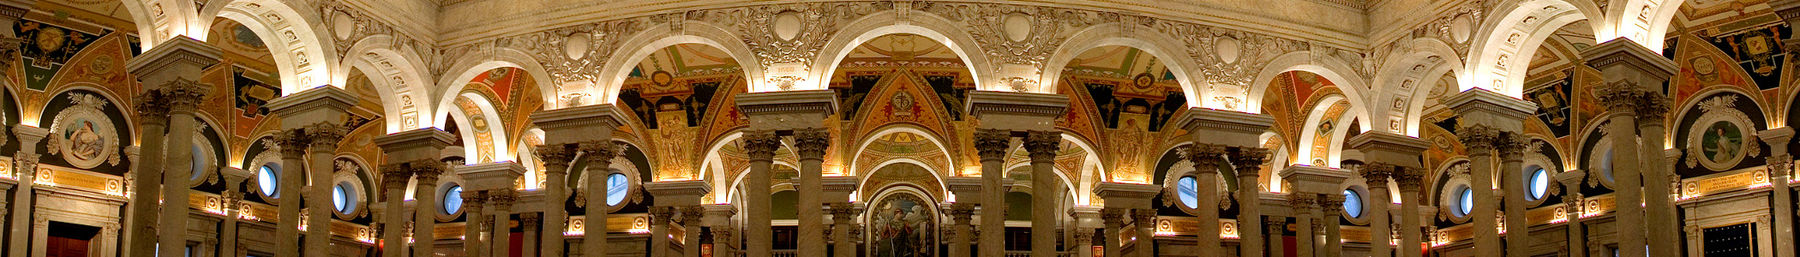 The Library of Congress foyer